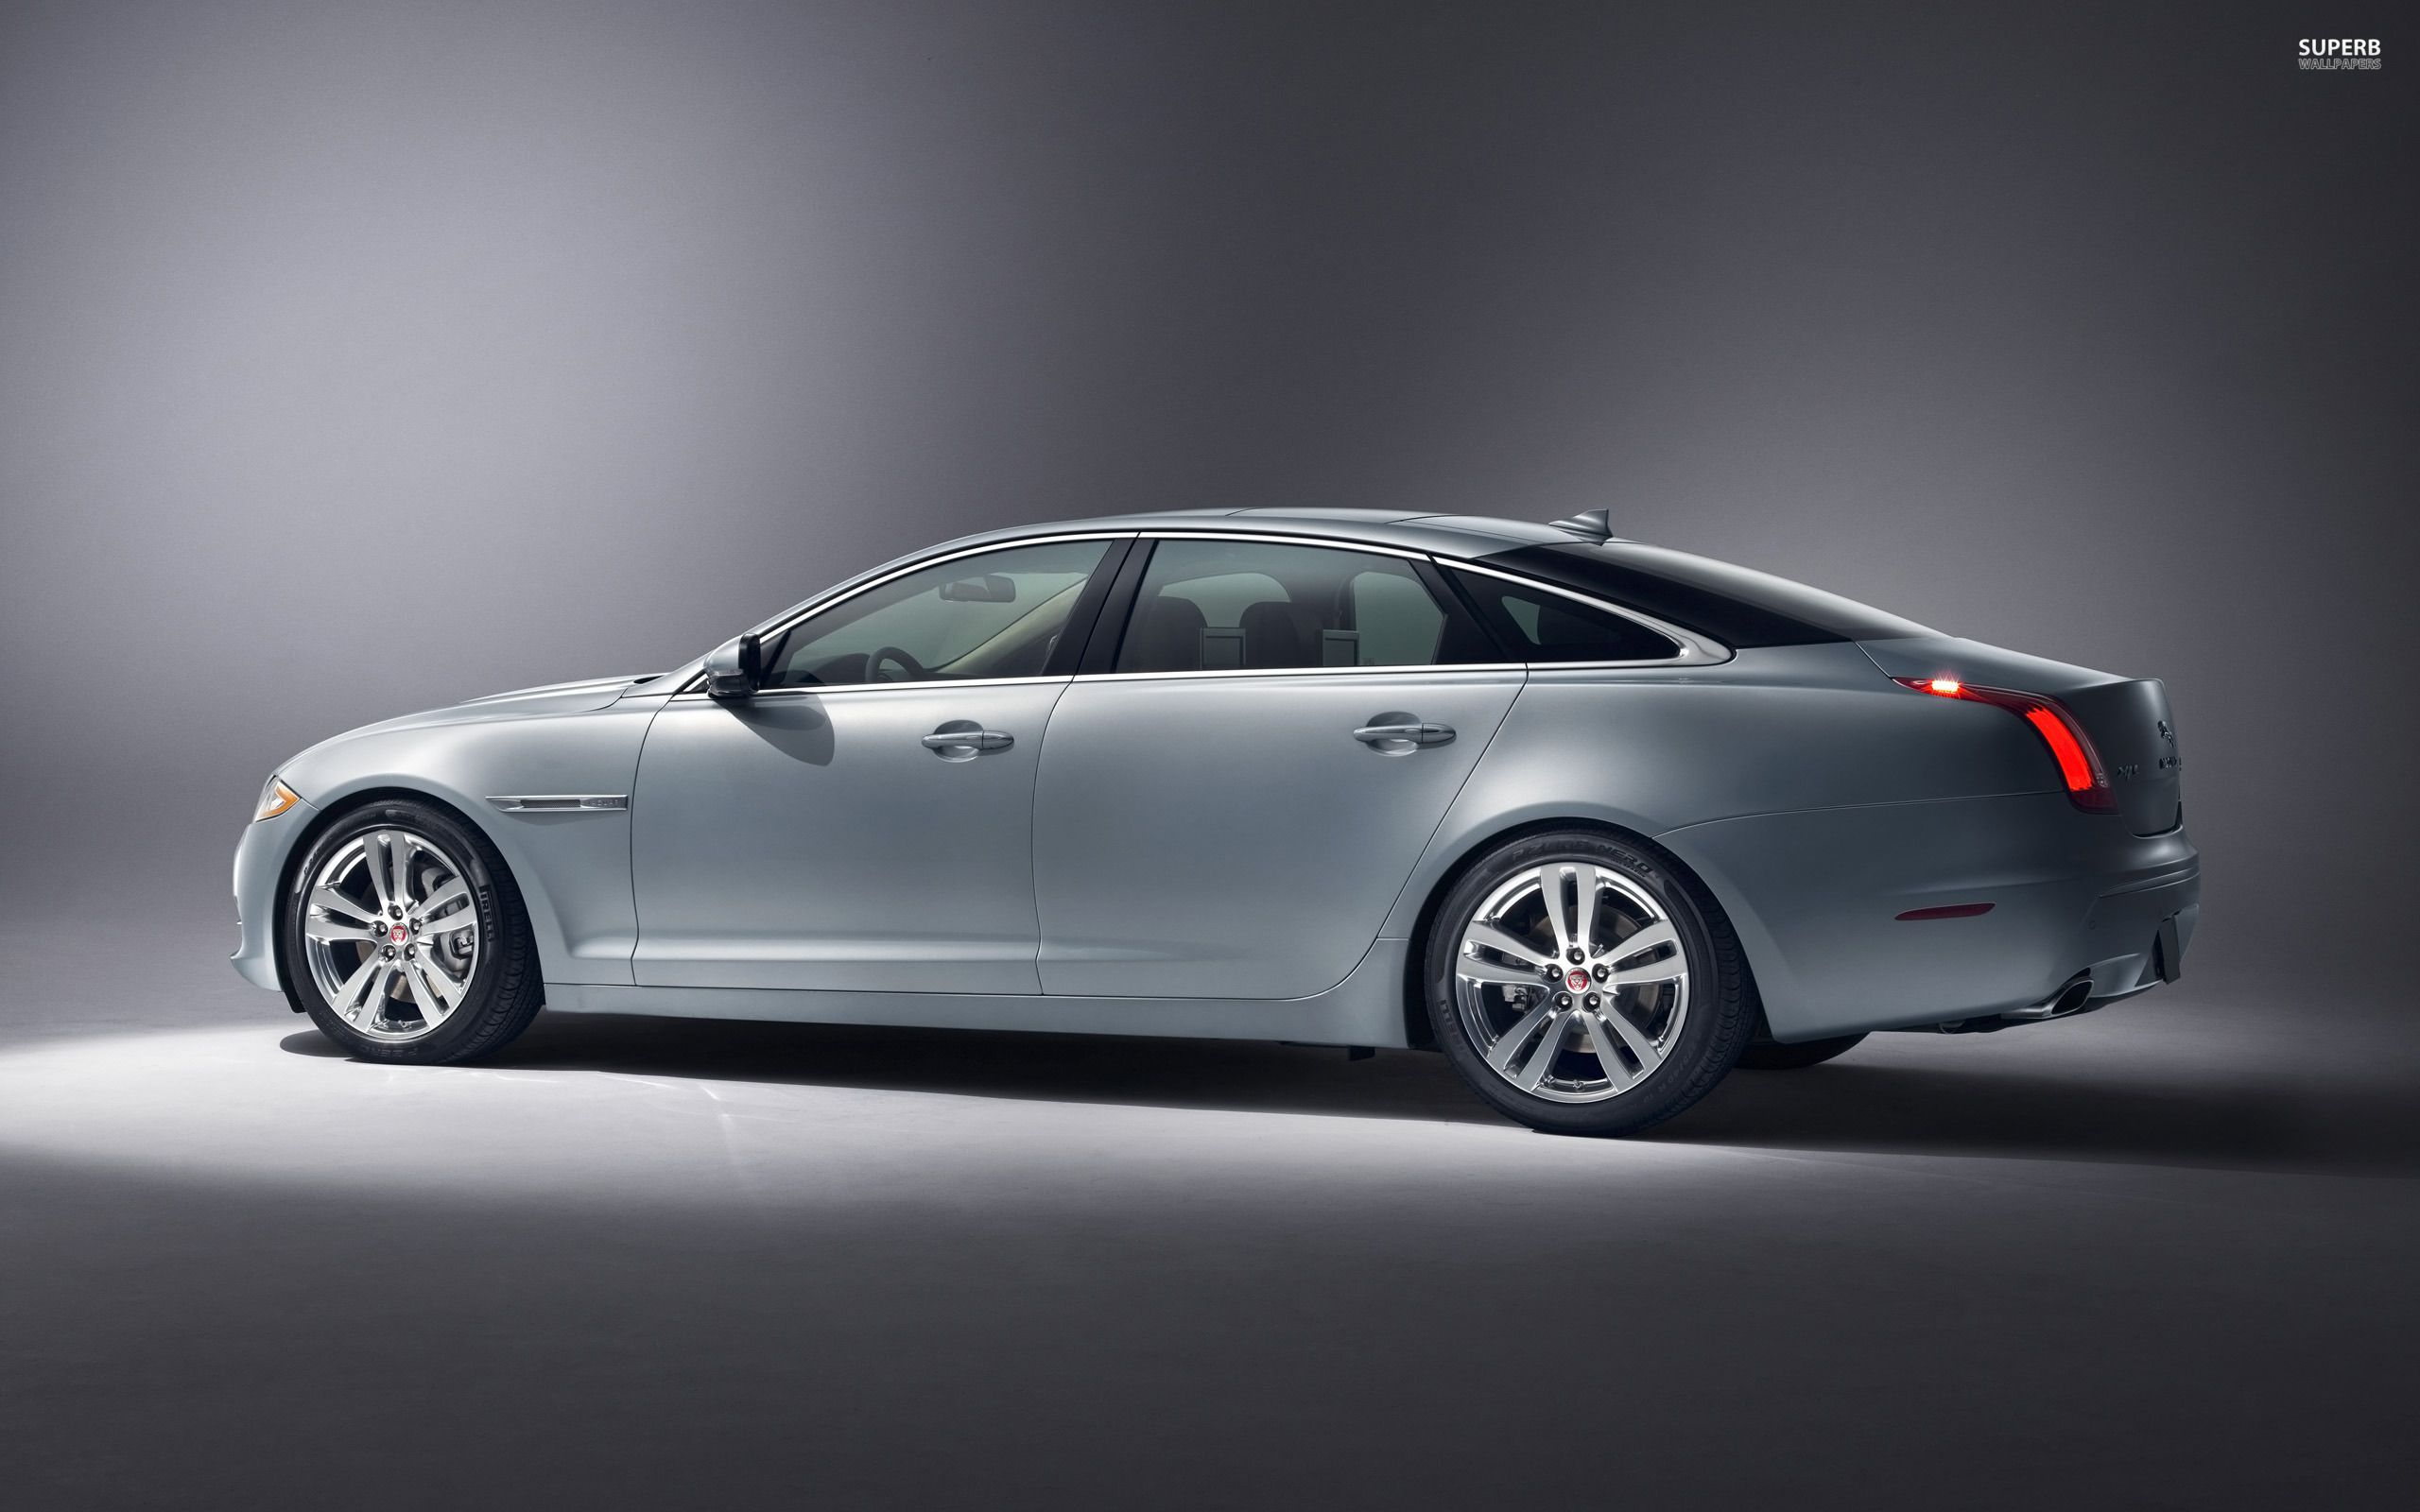 2014 Jaguar Cars | 2014 Jaguar XJ Wallpaper   Car Wallpapers   #24970